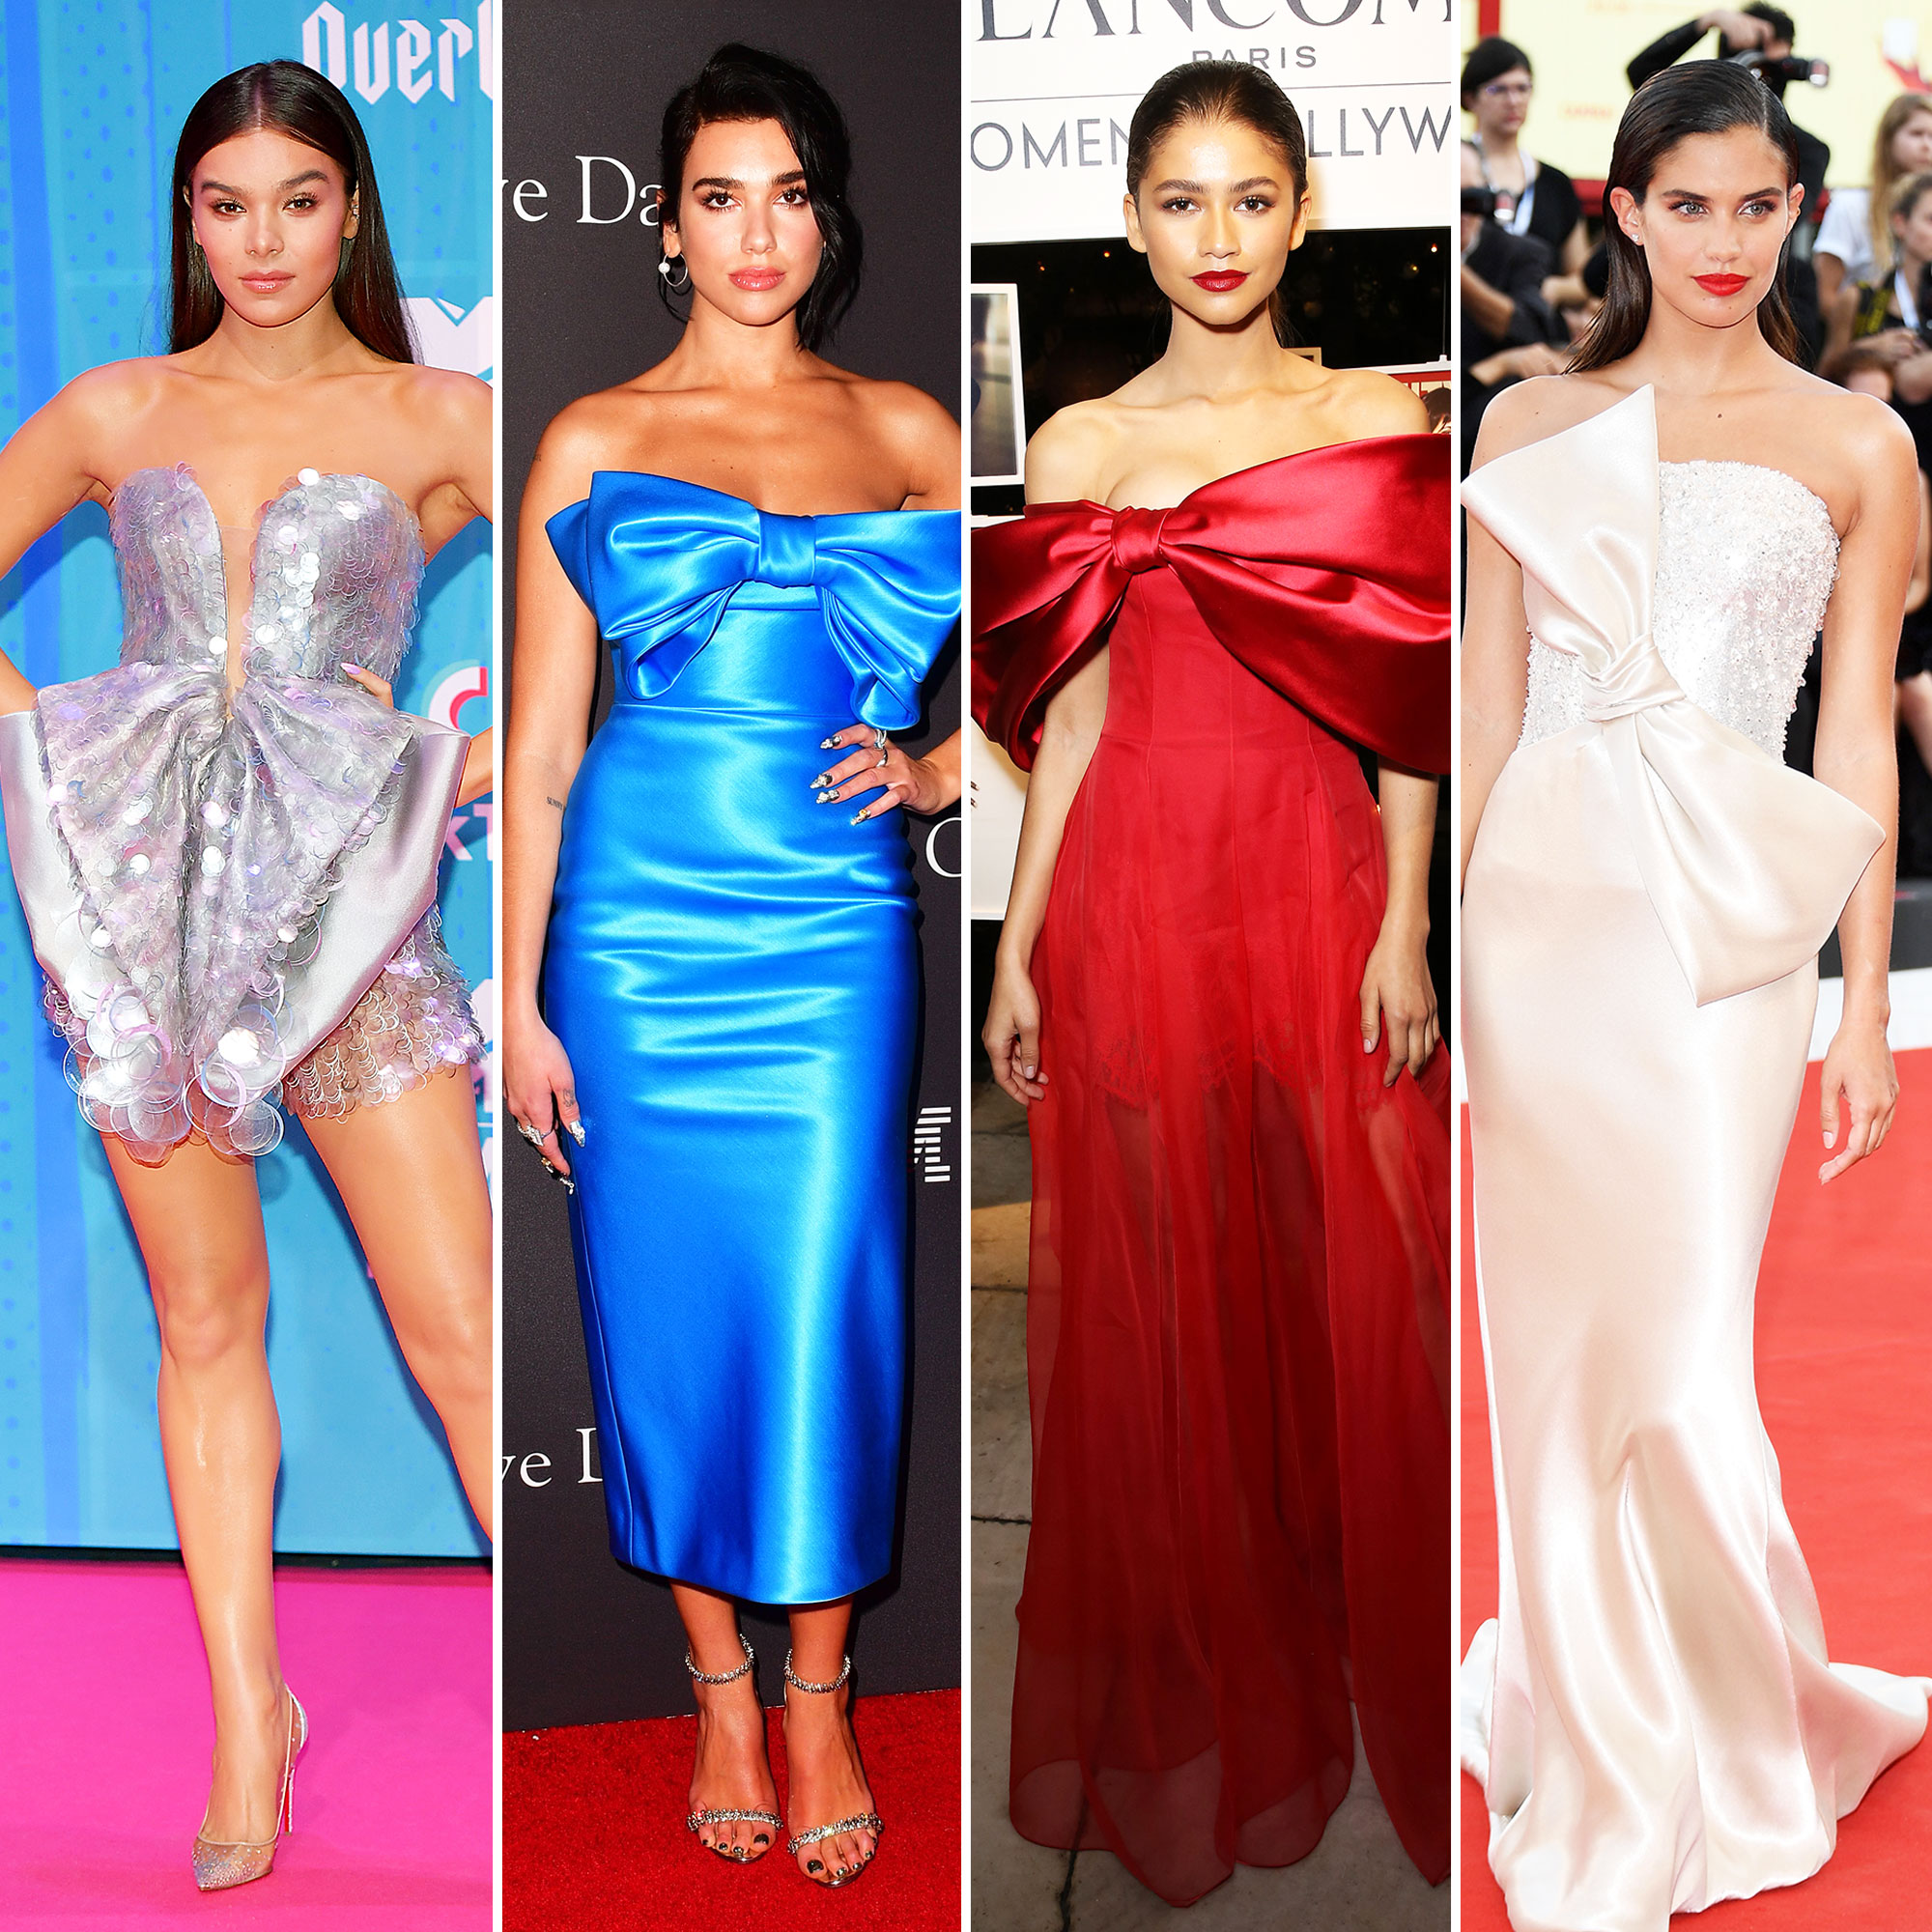 Hailee Steinfeld, Dua Lipa, Zendaya, and Sara Sampaio Bows red carpet gallery for Stylish - Hailee Steinfeld, Dua Lipa, Zendaya, and Sara Sampaio